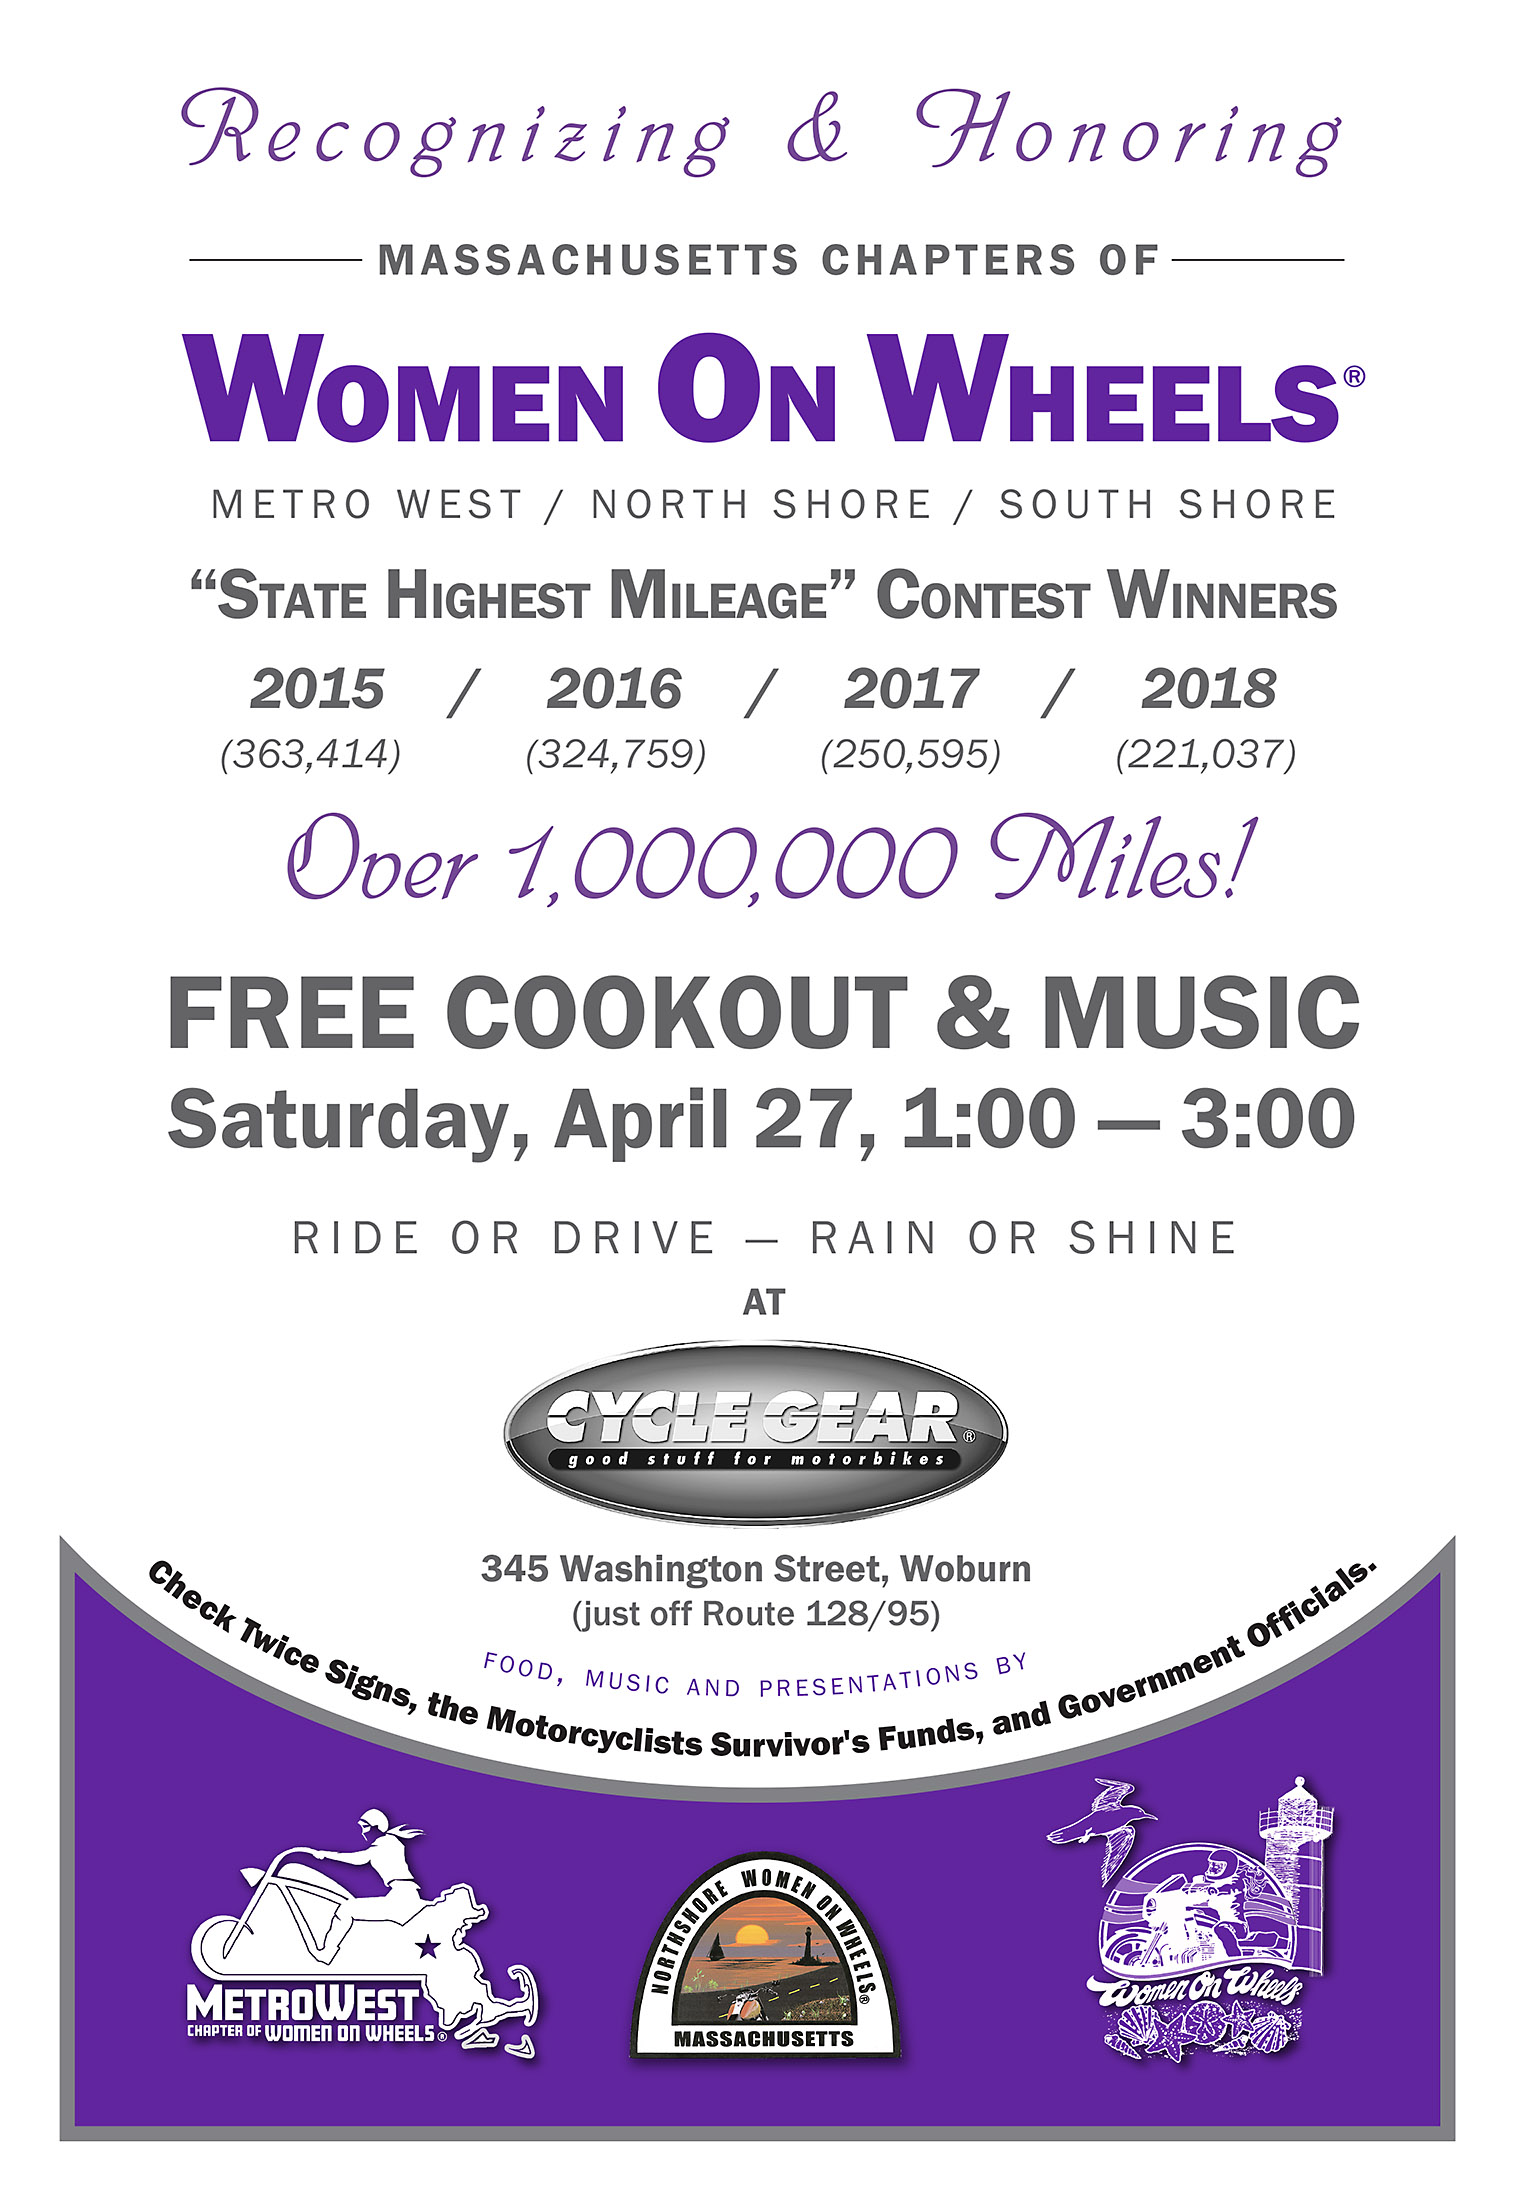 WoW Updated Event Flyer with 2018 miles too